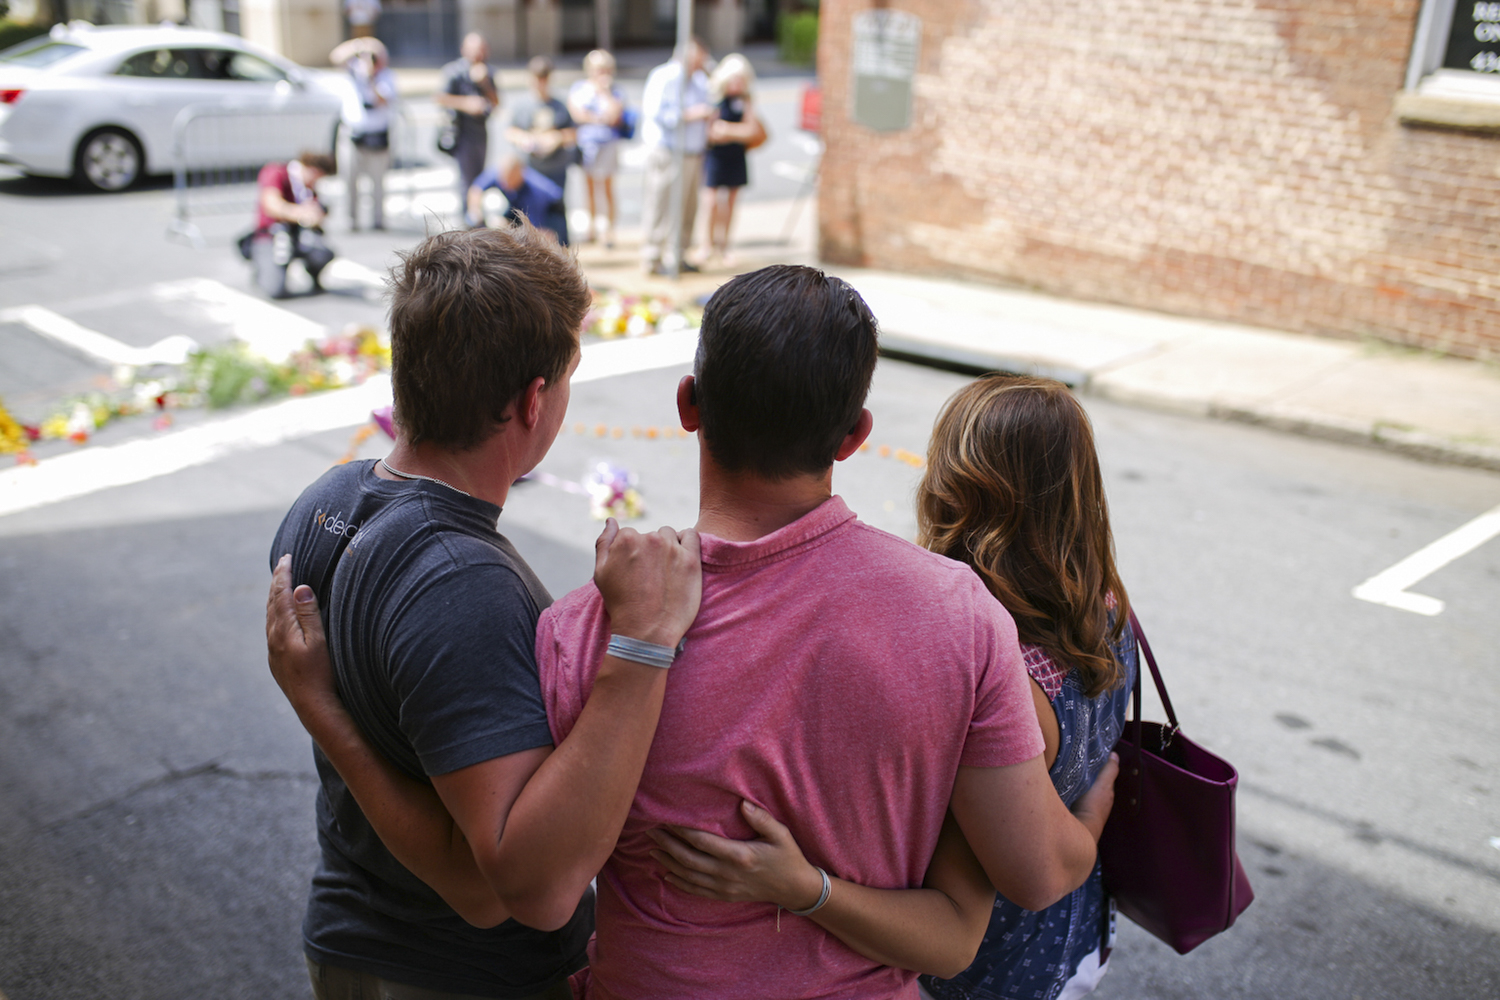 Charlottesville residents, from left, David Brear, Kerry Rock and Colleen Todd hug at the street memorial for the victim of Saturday's terrorist attack on counter protesters in Charlottesville, Va., on Sunday, August 13, 2017. [Scott P. Yates for The Wall Street Journal]